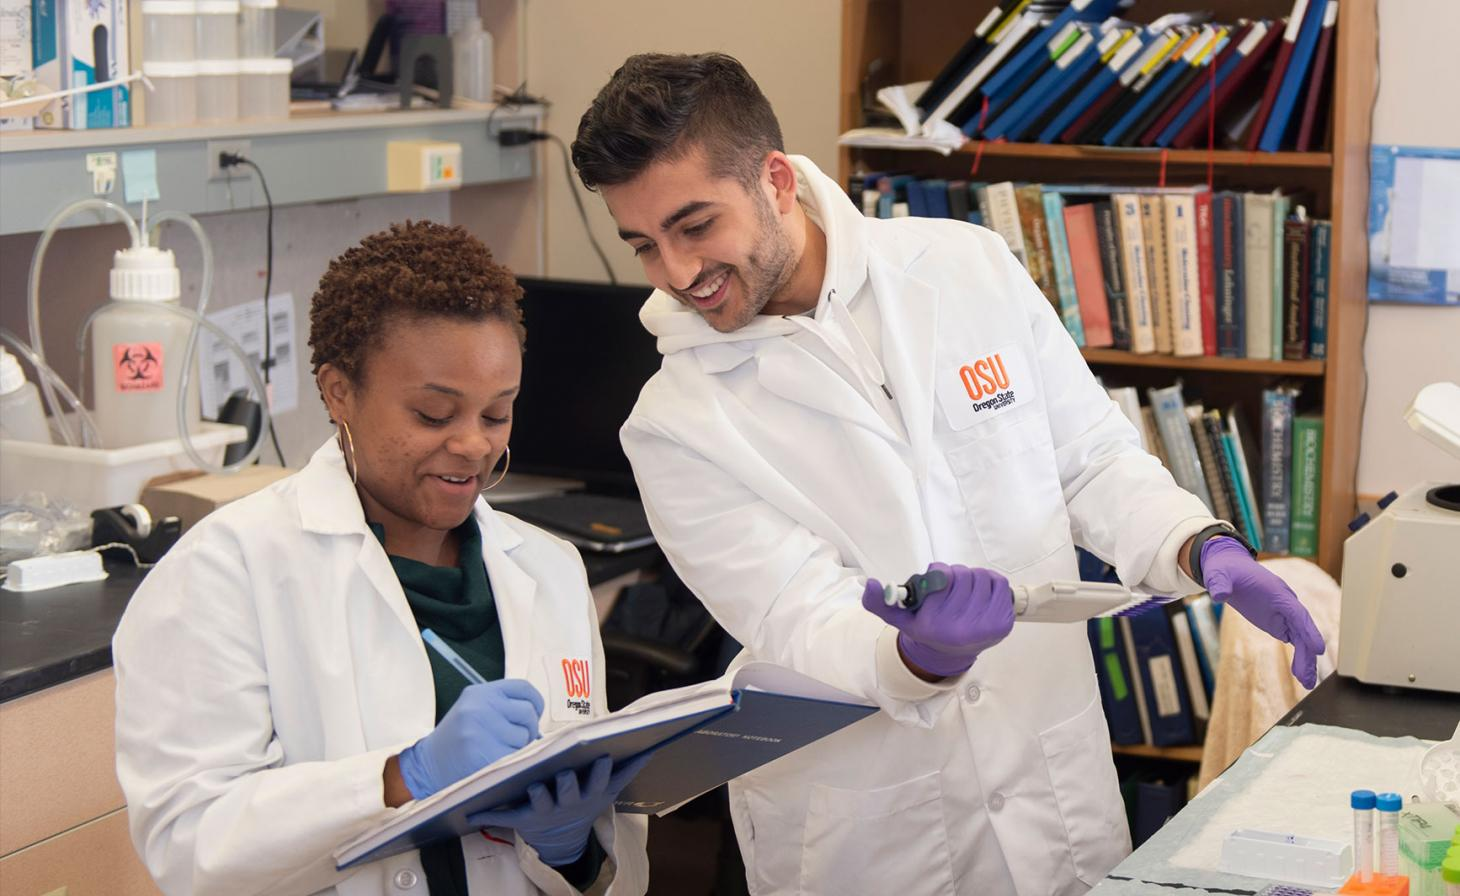 Graduate students working together in lab.